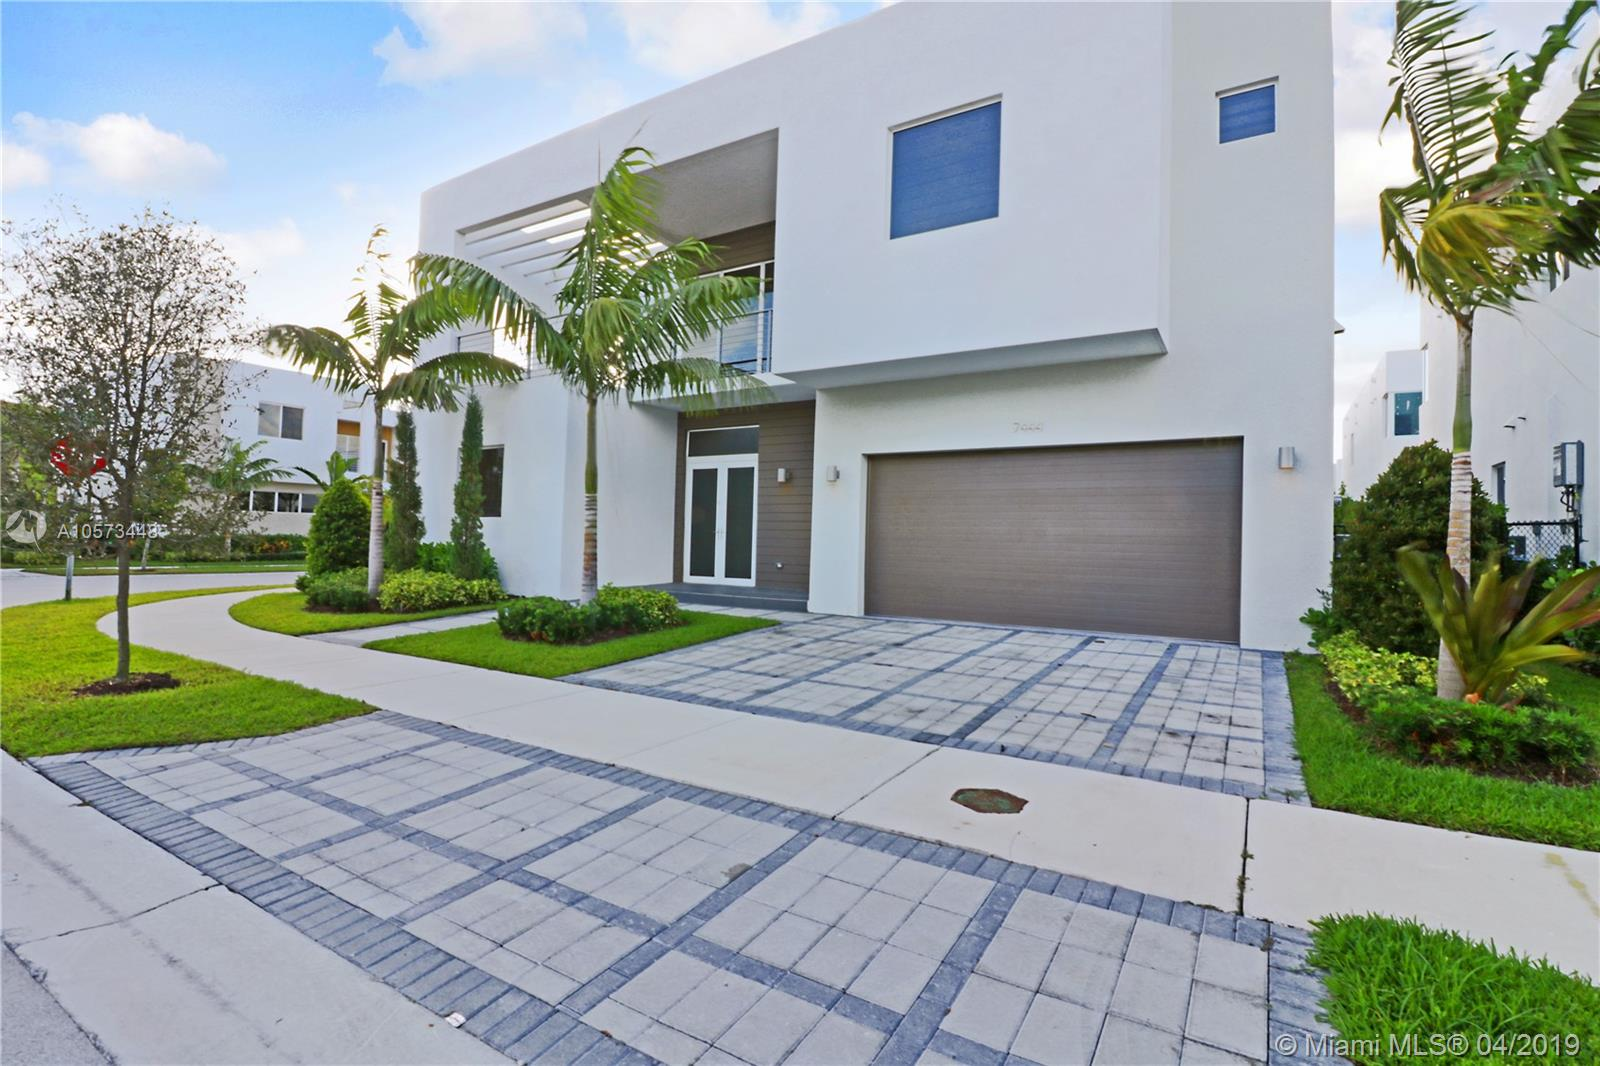 7444 NW 99th Pl, Doral, Florida